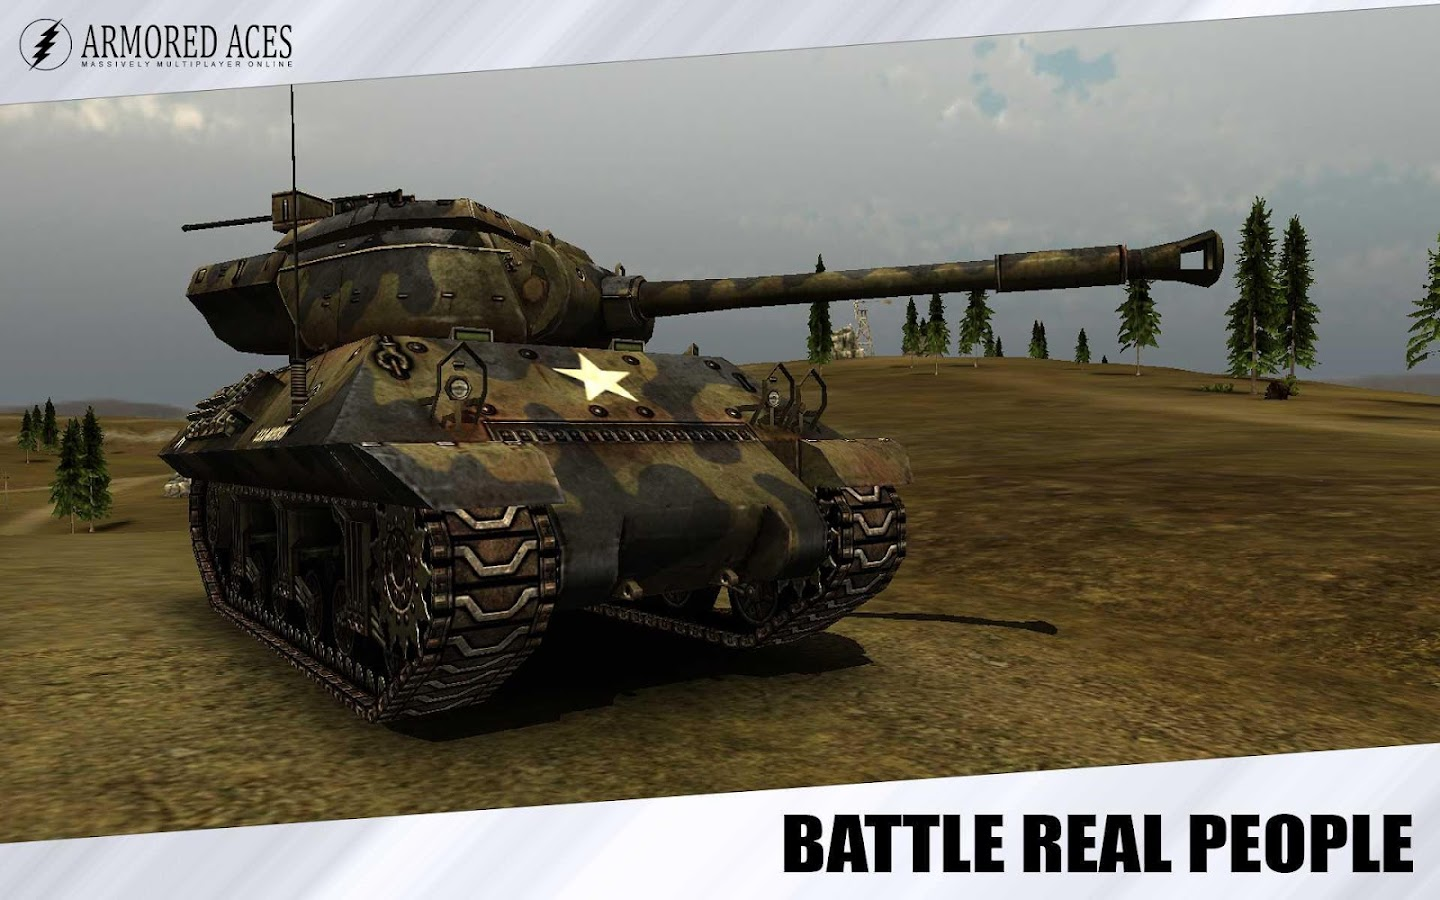 armored aces german tank videos music